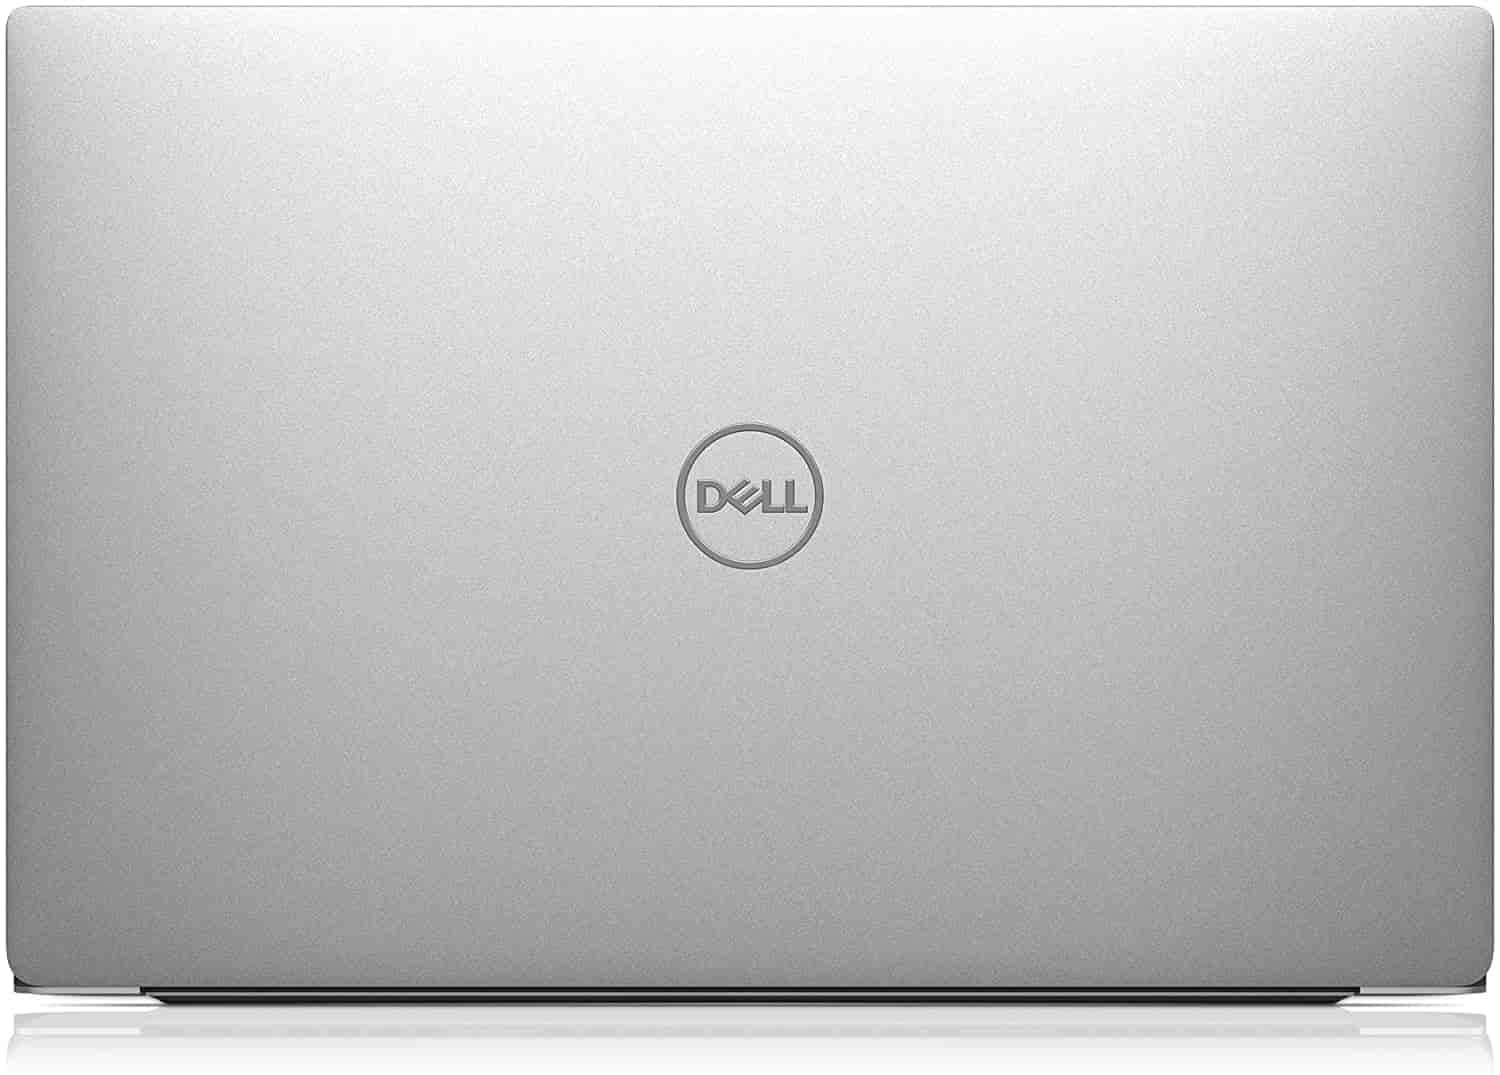 dell-xps-15-9570-i7-8750h-silver-design_1587381561.jpg